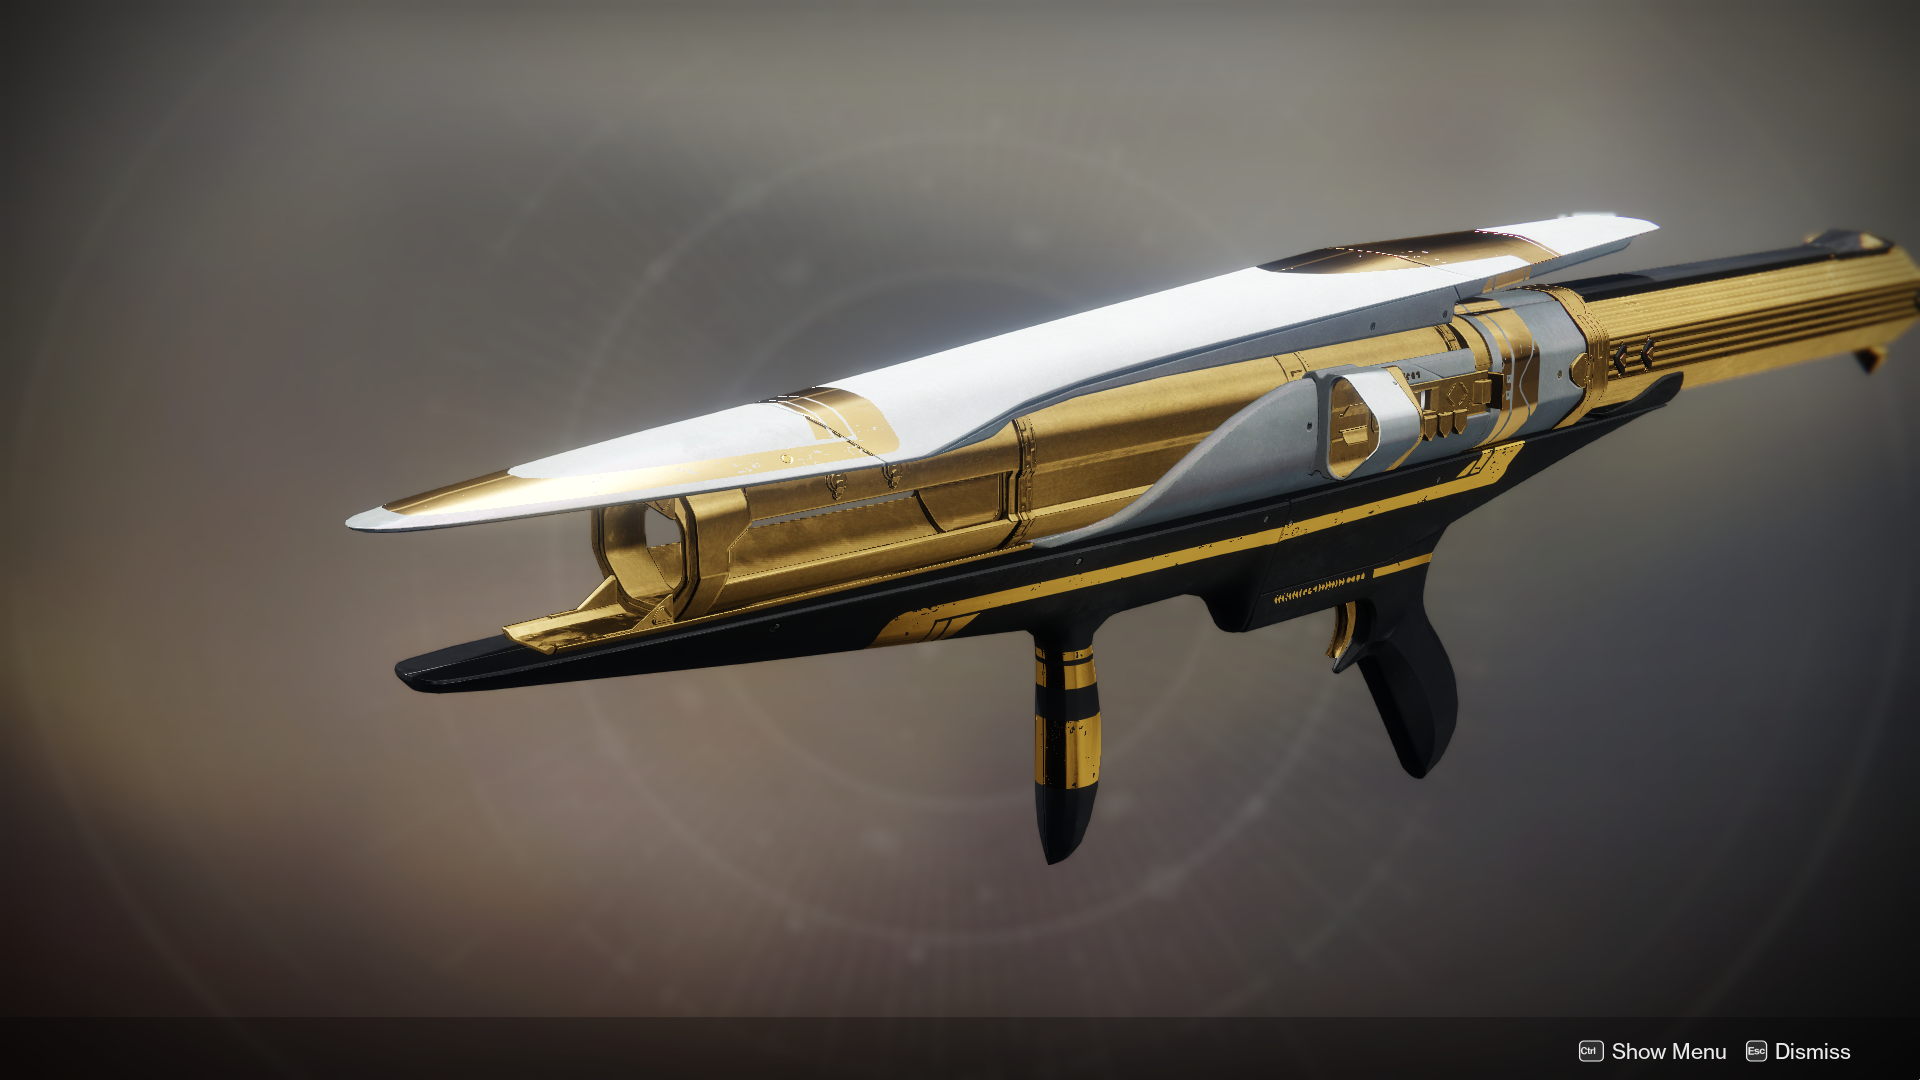 Destiny 2's power weapons are getting more powerful in Season of the Drifter